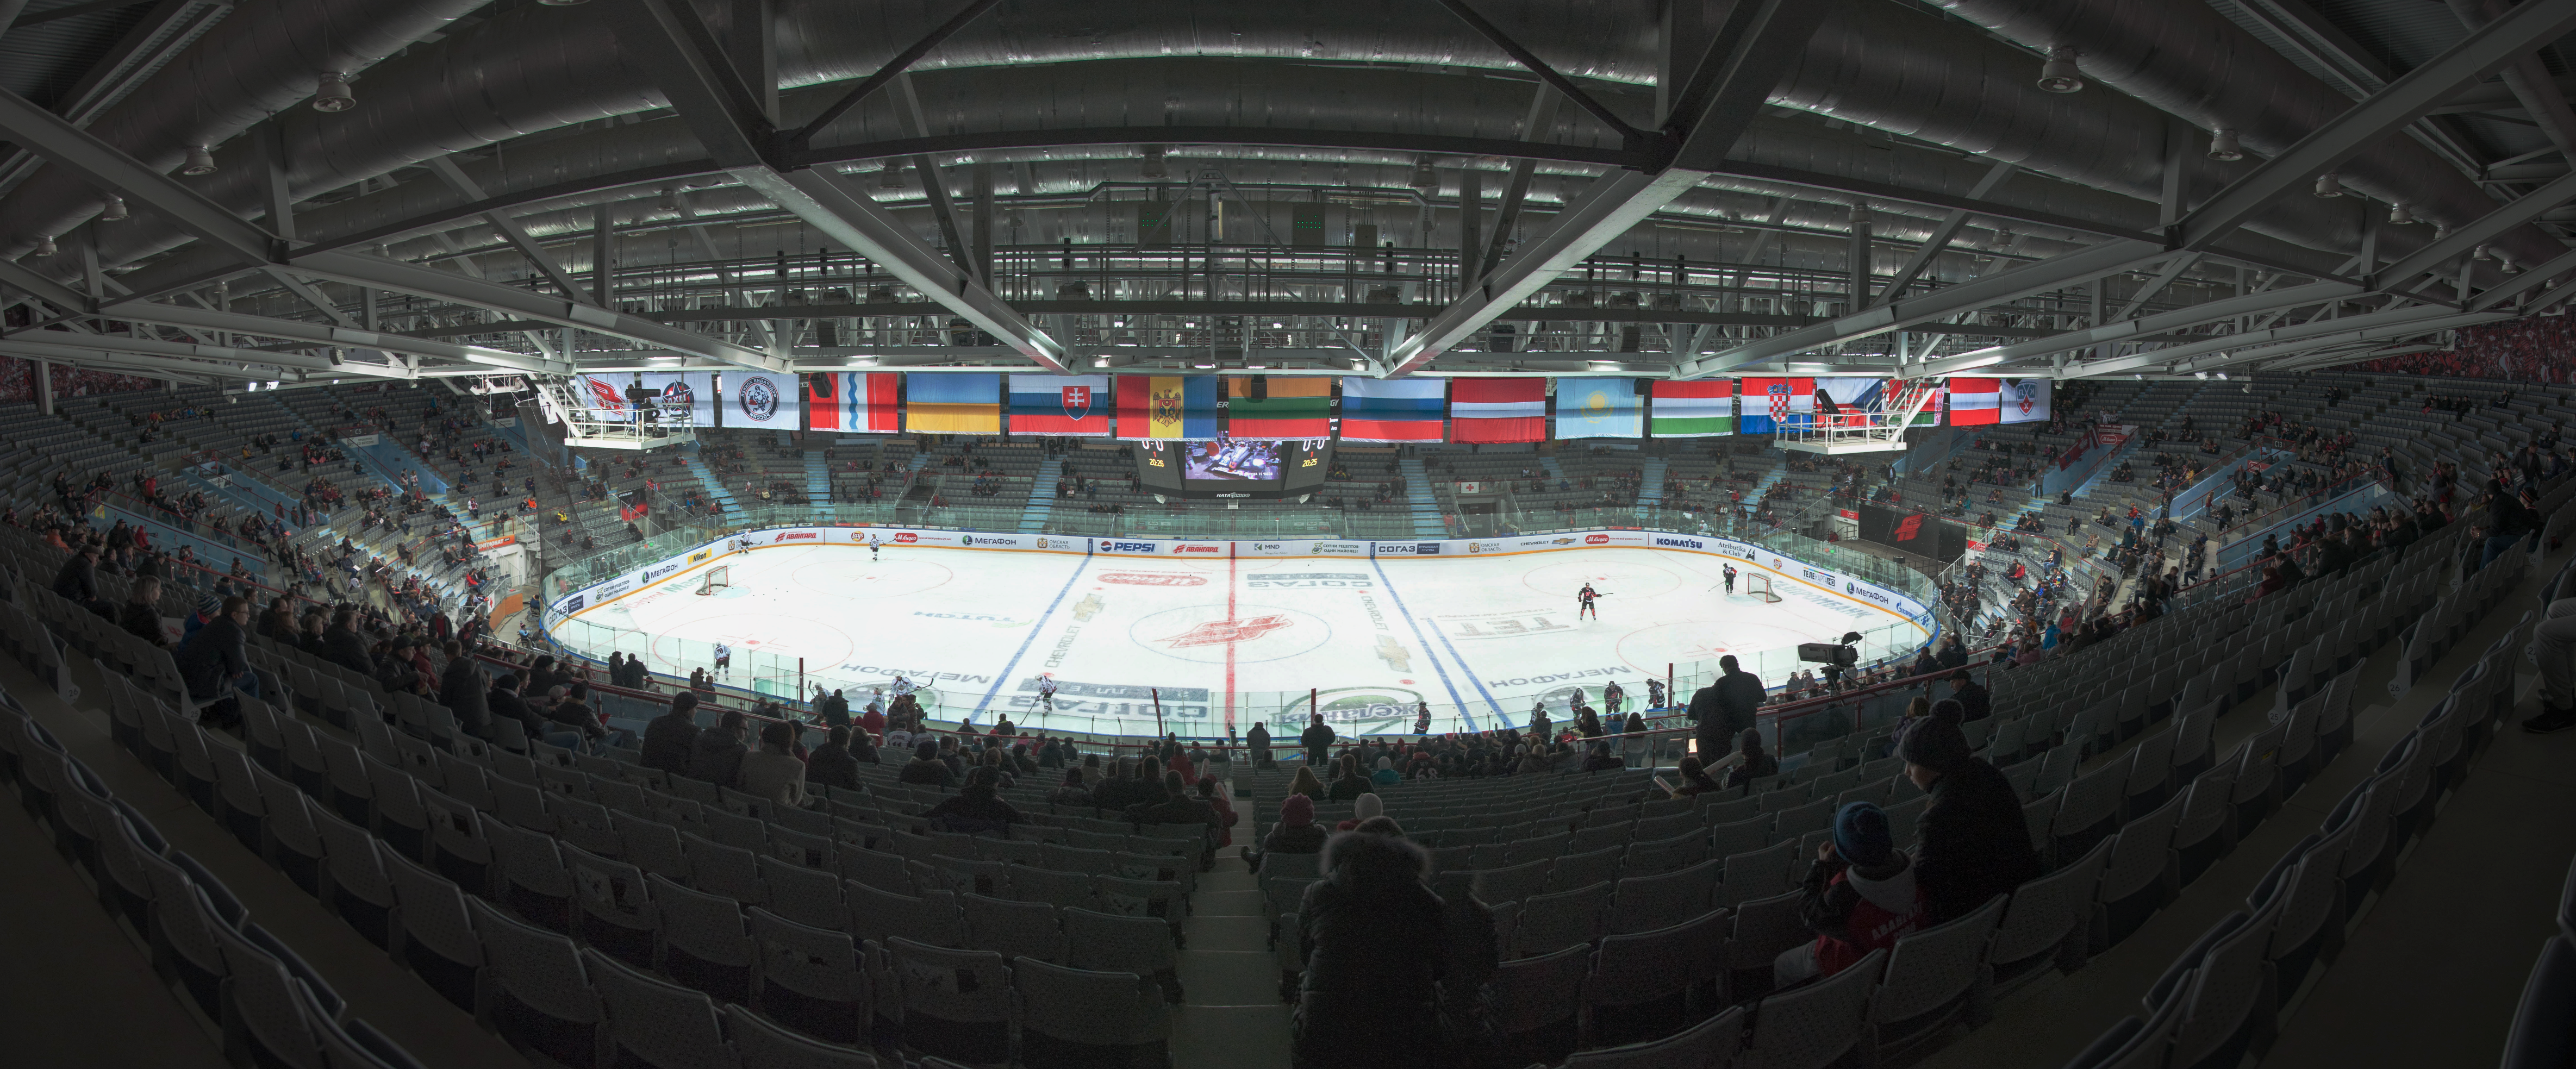 Internal_view_of_arena_omsk